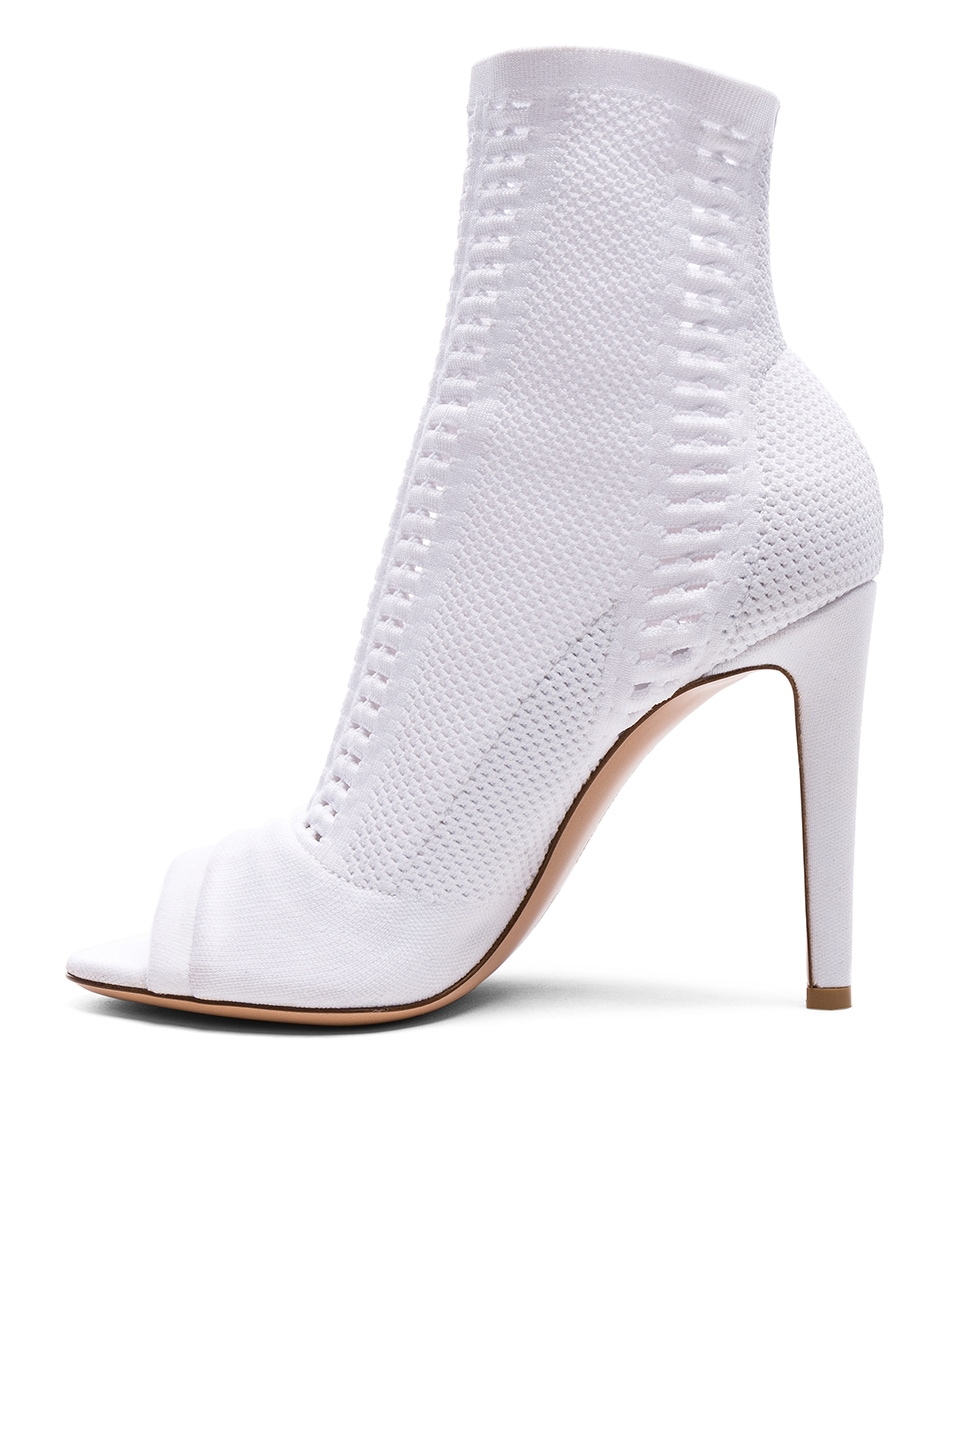 Image 5 of Gianvito Rossi Knit Vires Booties in White